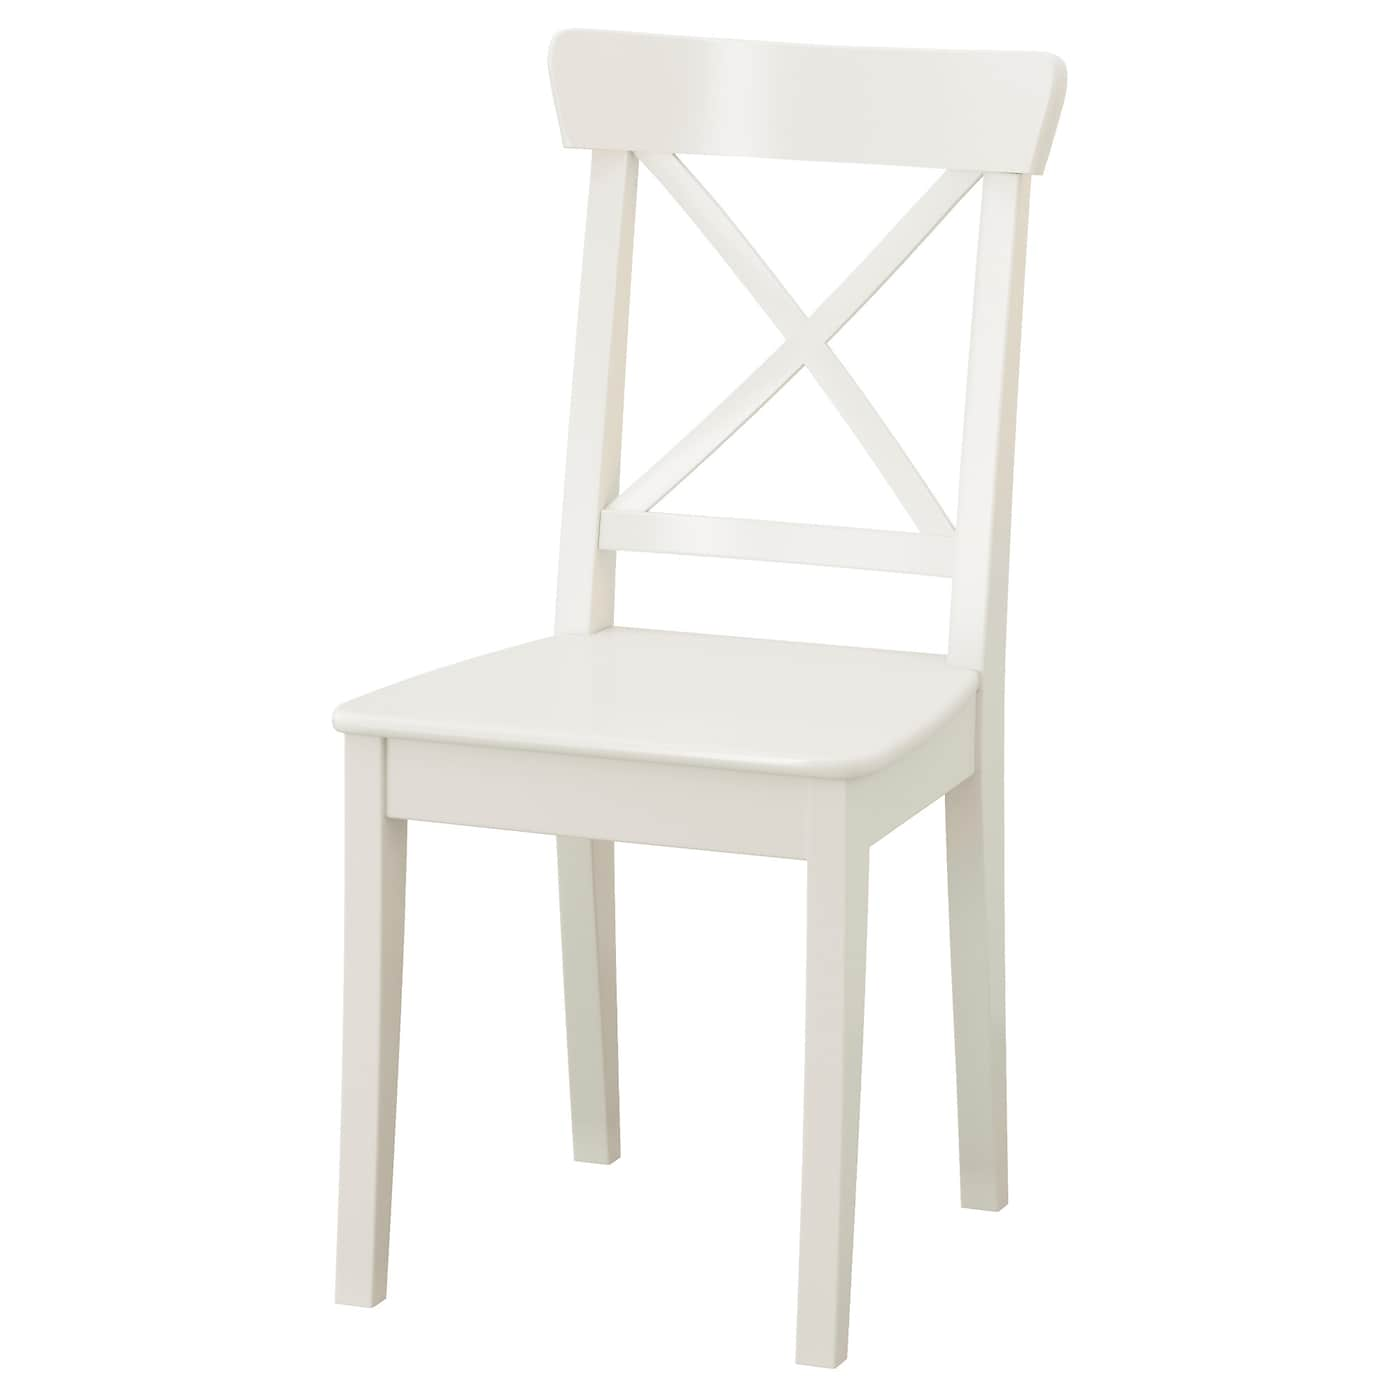 IKEA INGOLF chair Solid wood is a hardwearing natural material.